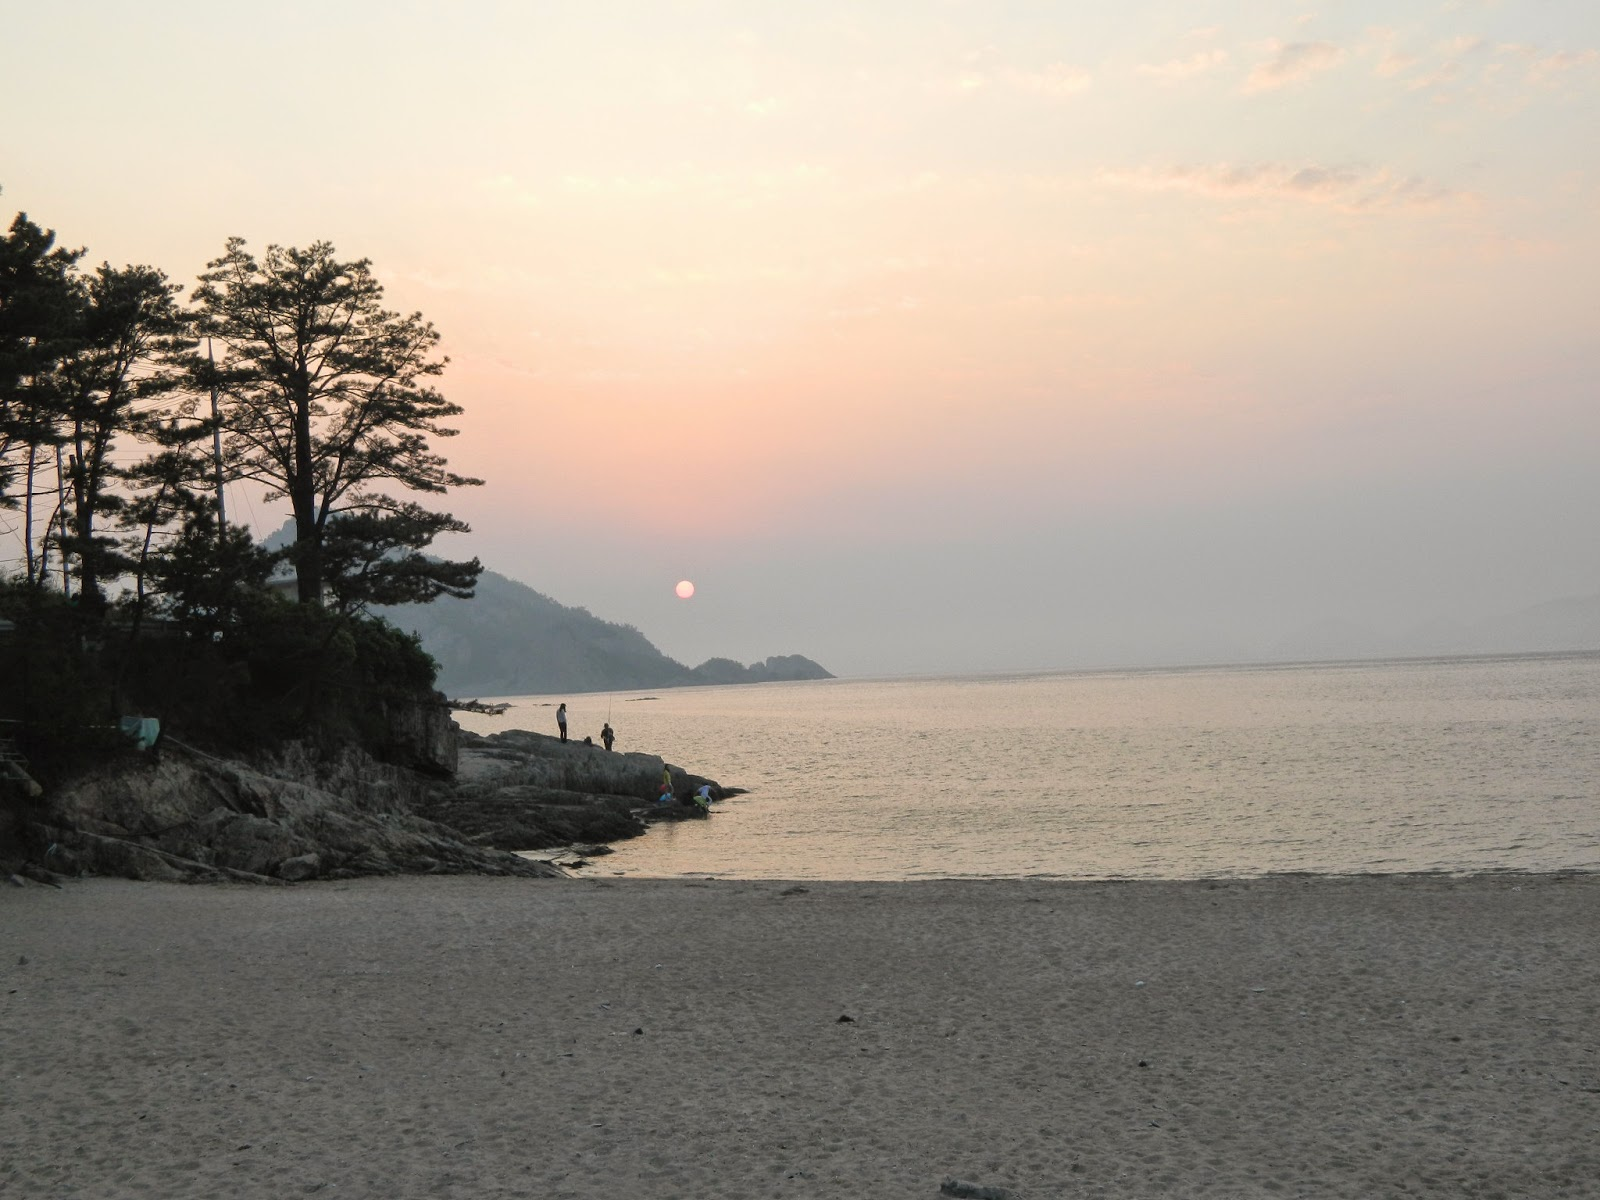 Sunset at Seonyudo beach